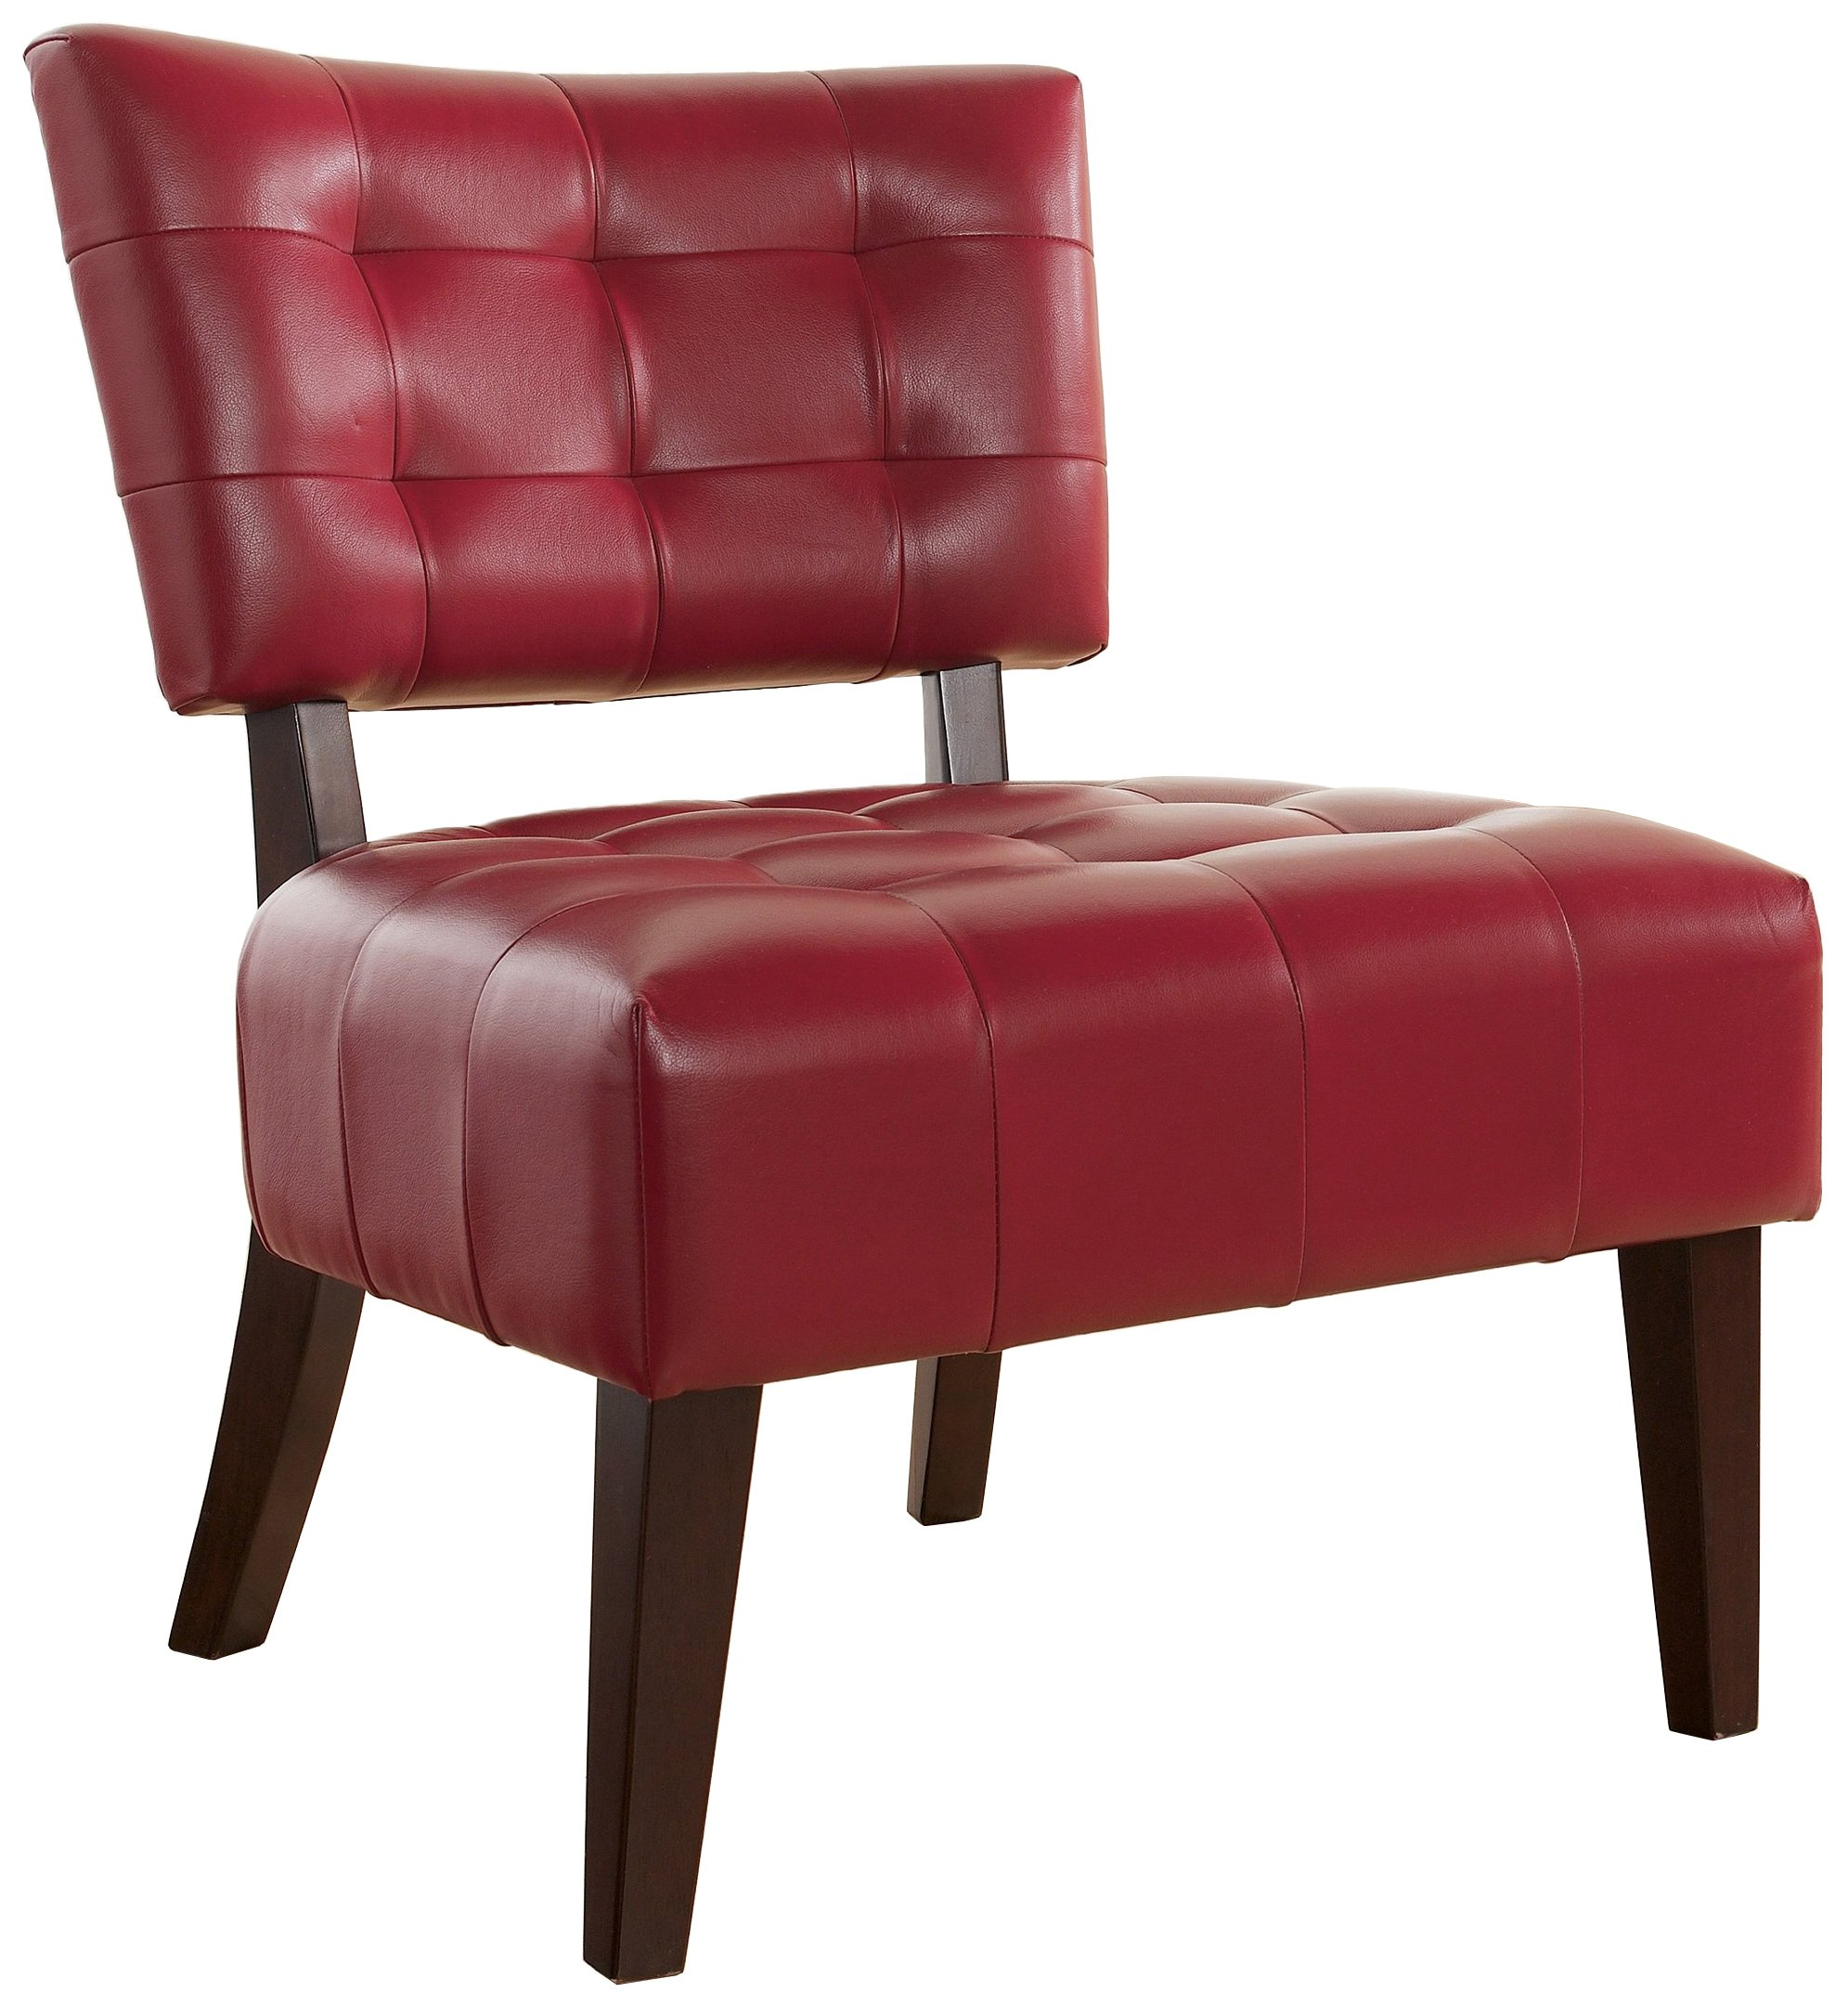 "Roundhill Furniture Blended Leather Tufted Accent Chair with Oversized Seating, Red - Oversized seating provides large comfort, durable blended leather. Kiln-dried hardwood frame; Materials: wood legs, PU leather (faux leather) Size: 27""W x 31""D x 34""H - living-room-furniture, living-room, accent-chairs - 81itIcrSibL -"